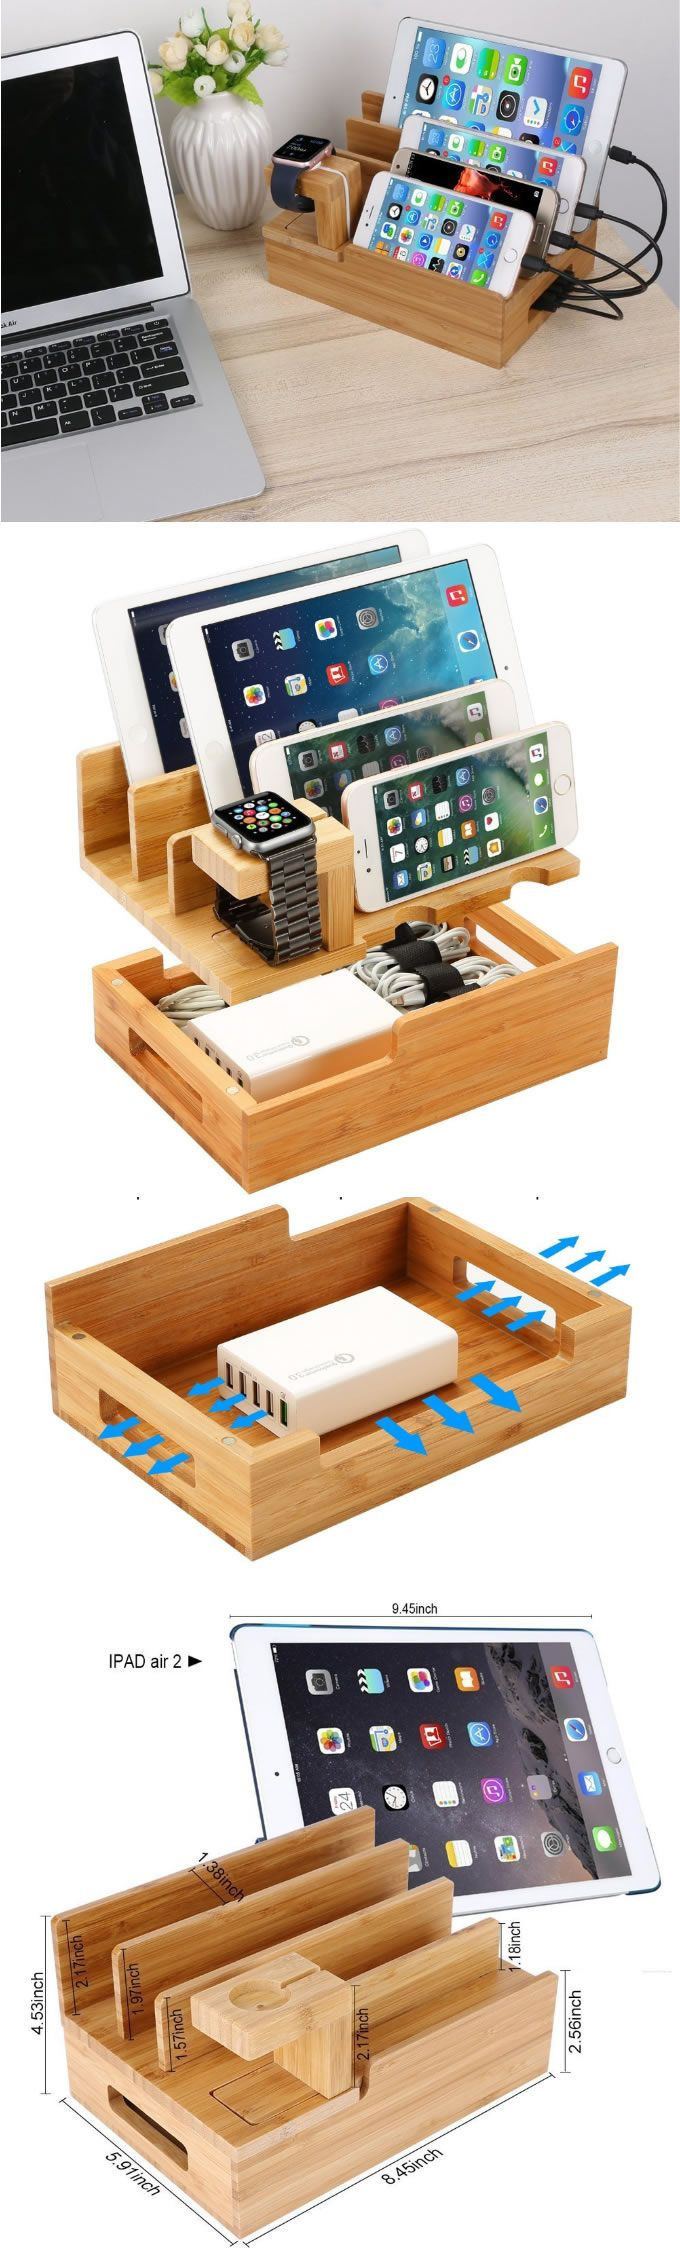 Bamboo Wooden Multi- Device Apple Watch Charging Station Dock Holder & iPhone SmartPhone iPad Tablets Laptops Charging Station Dock Holder Stand Mount Charge Cord Cable Organizer Management System For Smart Phones, Tablets and Laptops